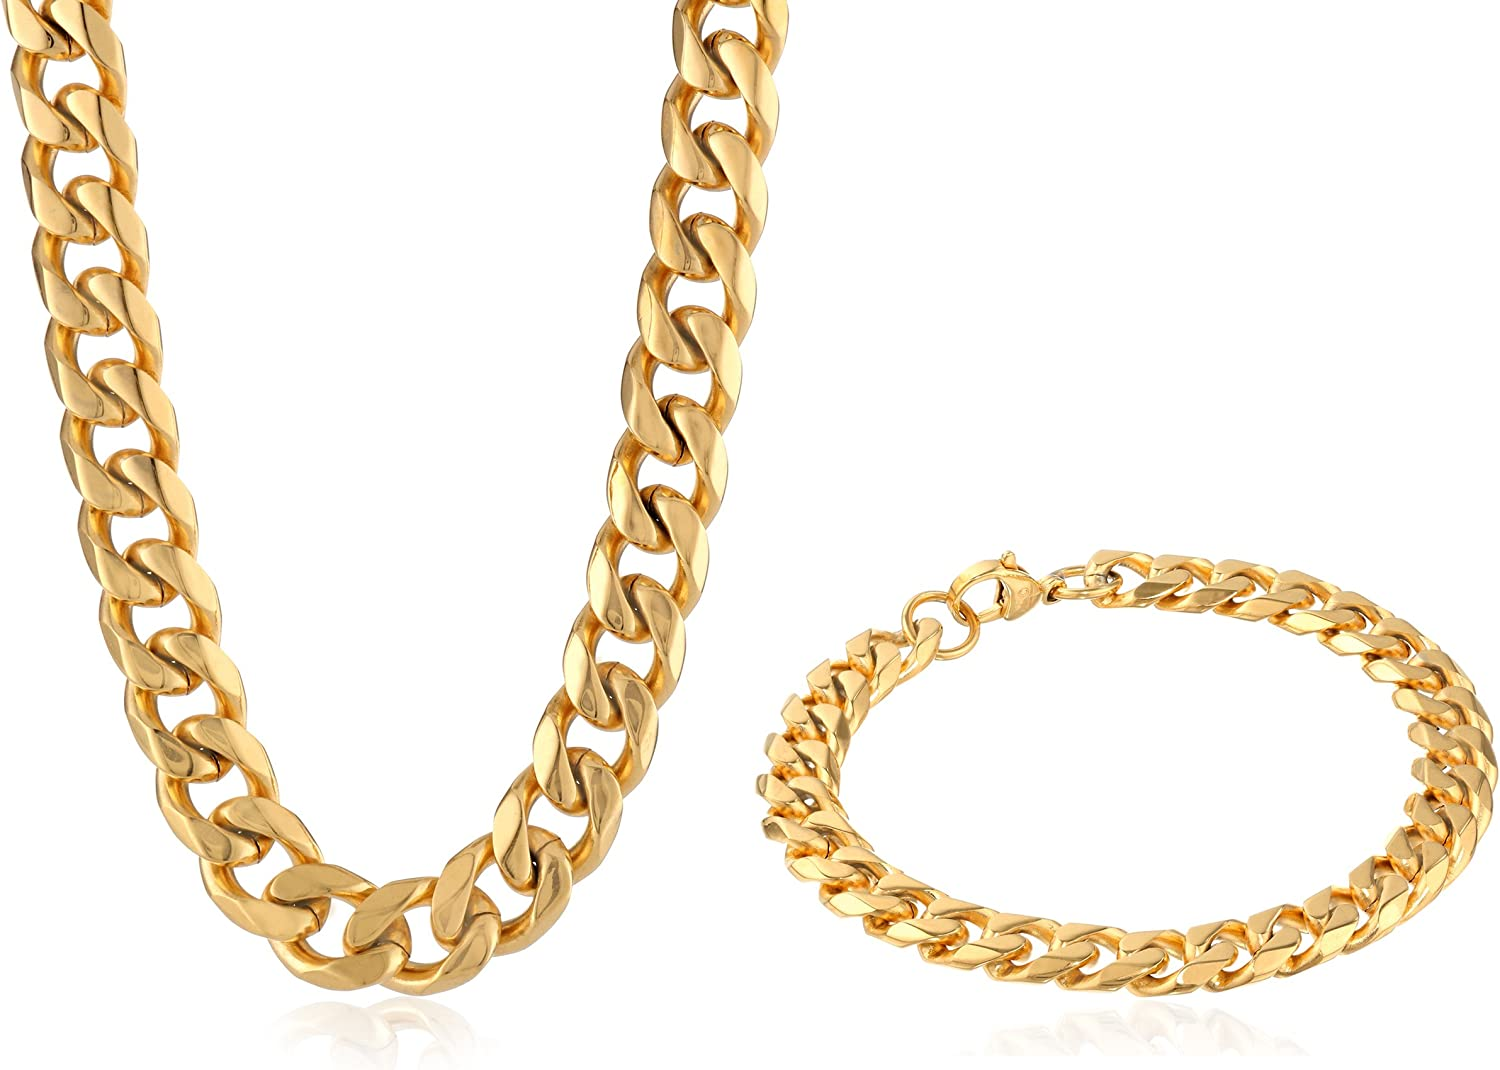 Men's Stainless Steel Curb Chain Bracelet and Necklace Jewelry Set Gold-Tone 22 Inches 10 mm Wide by Lavari Jewelers